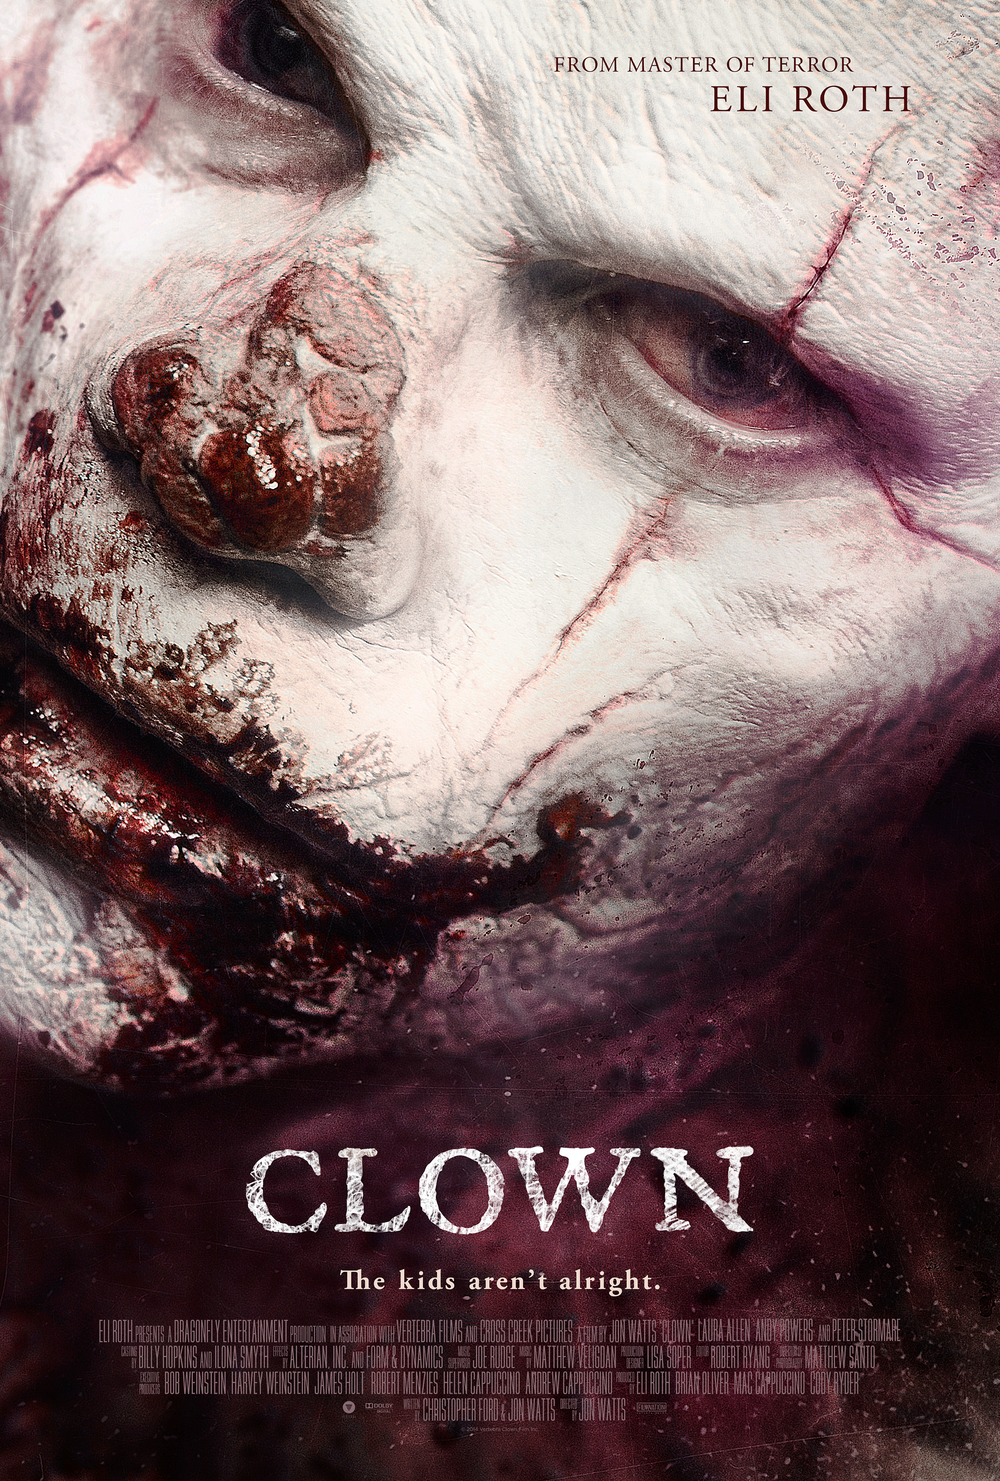 CLOWN_Intl_Poster_Preview.jpg